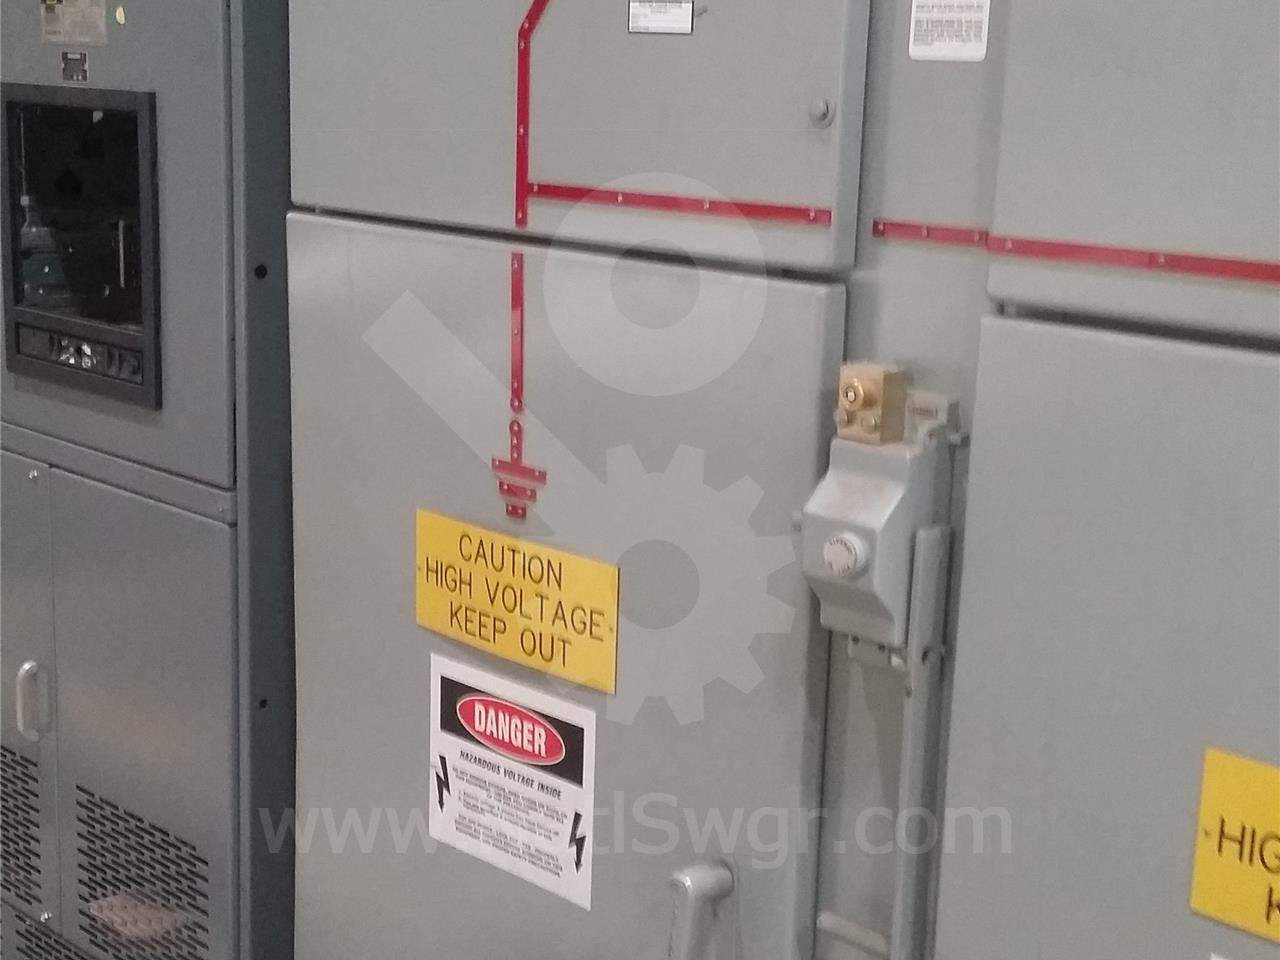 PIF SWITCH 600A GE / General Electric PIF 15KV 40KA ID NON FUSED, METAL INCLOSED INTERRUPTER SWITCH